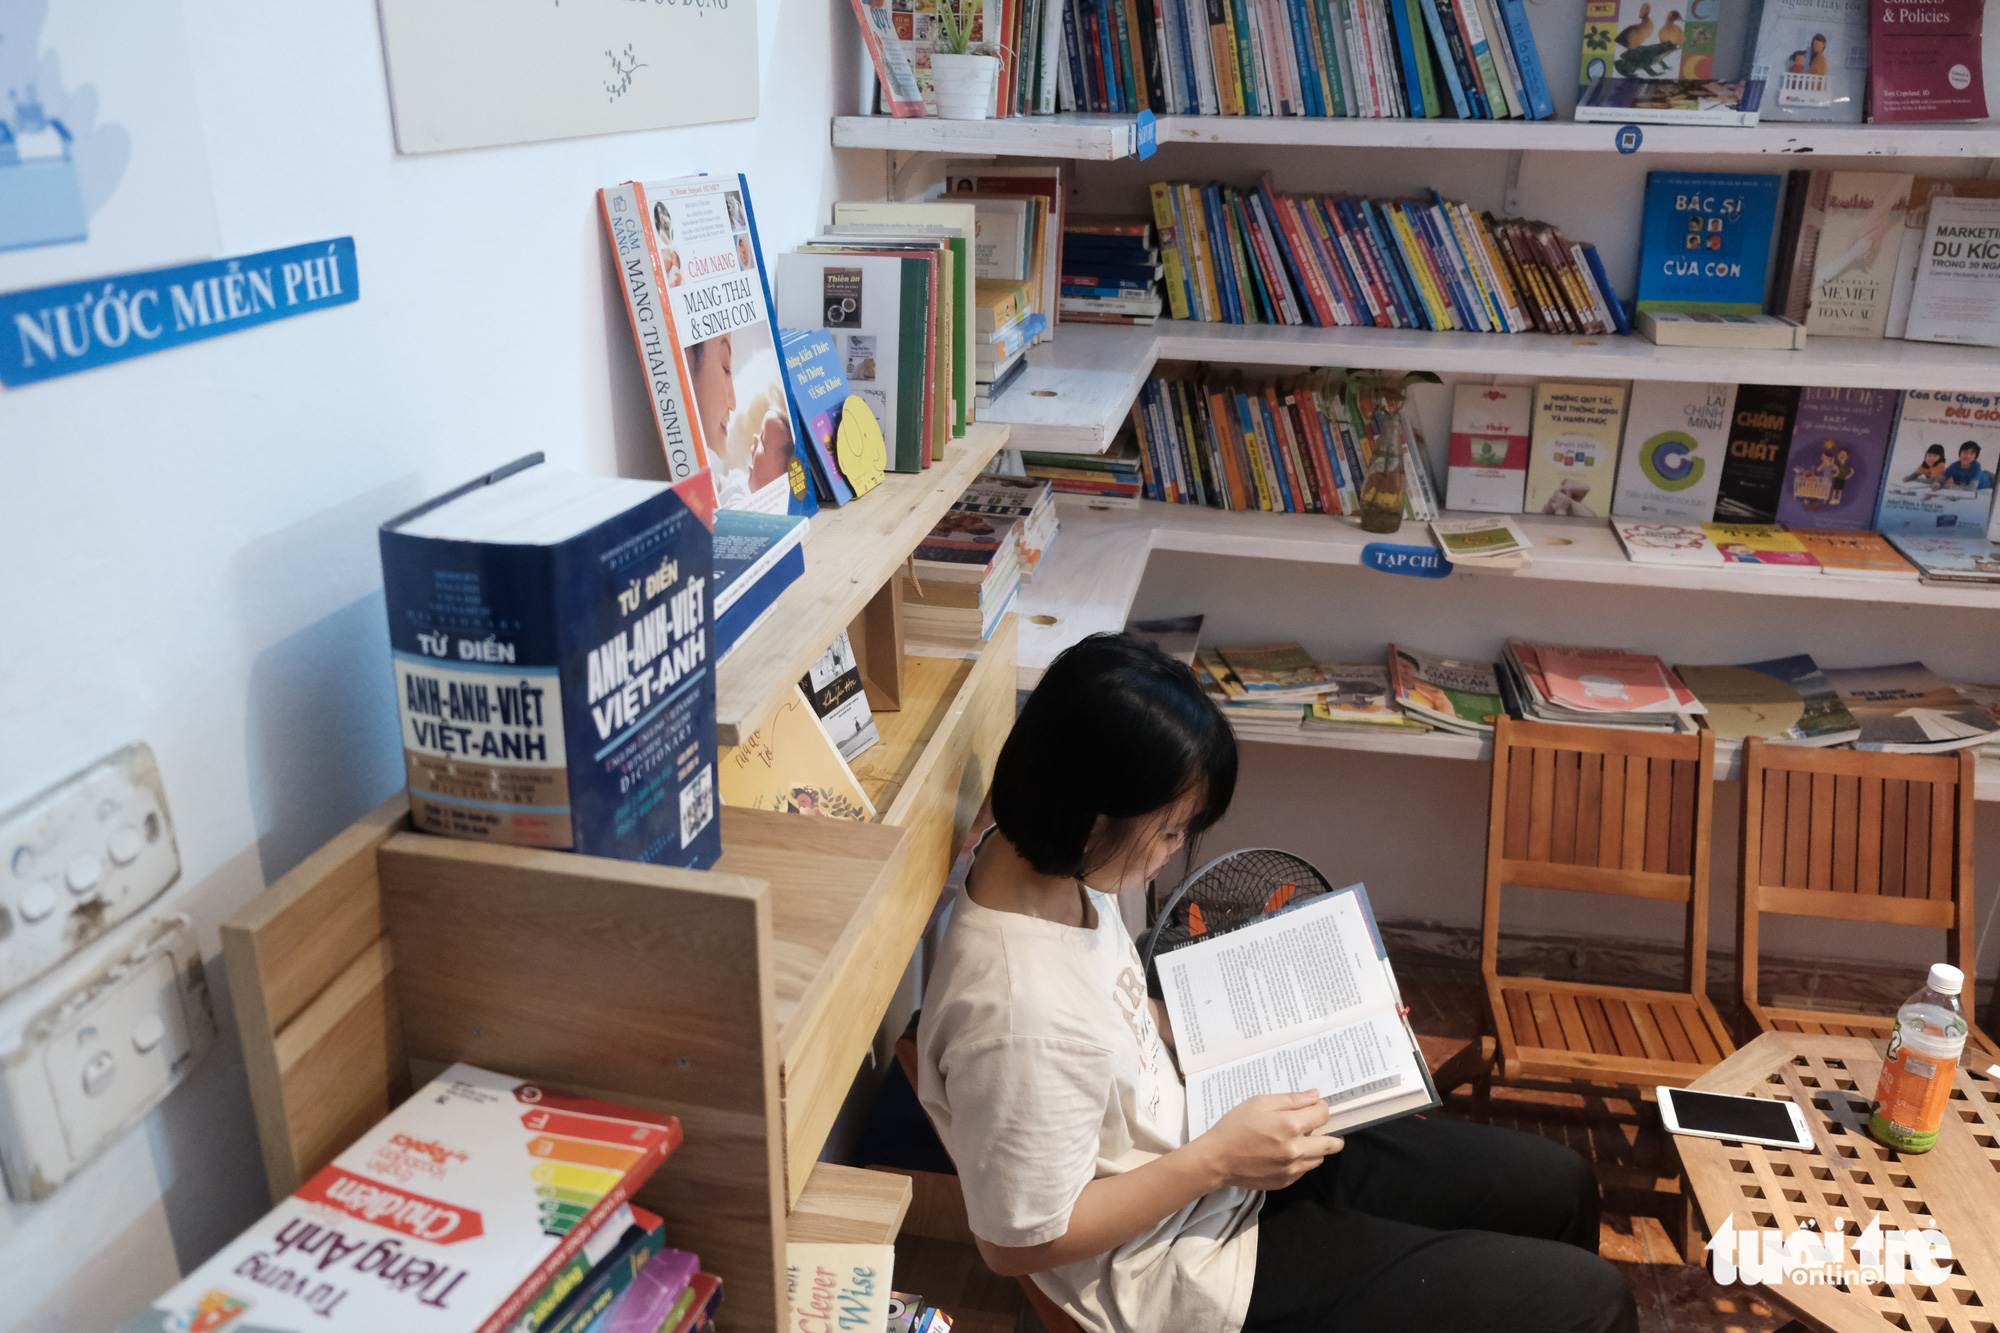 A girl reads a book at the 'free aid combo' store at No. 66 Chua Lang Street, Dong Da District, Hanoi, Vietnam. Photo: Song La / Tuoi Tre